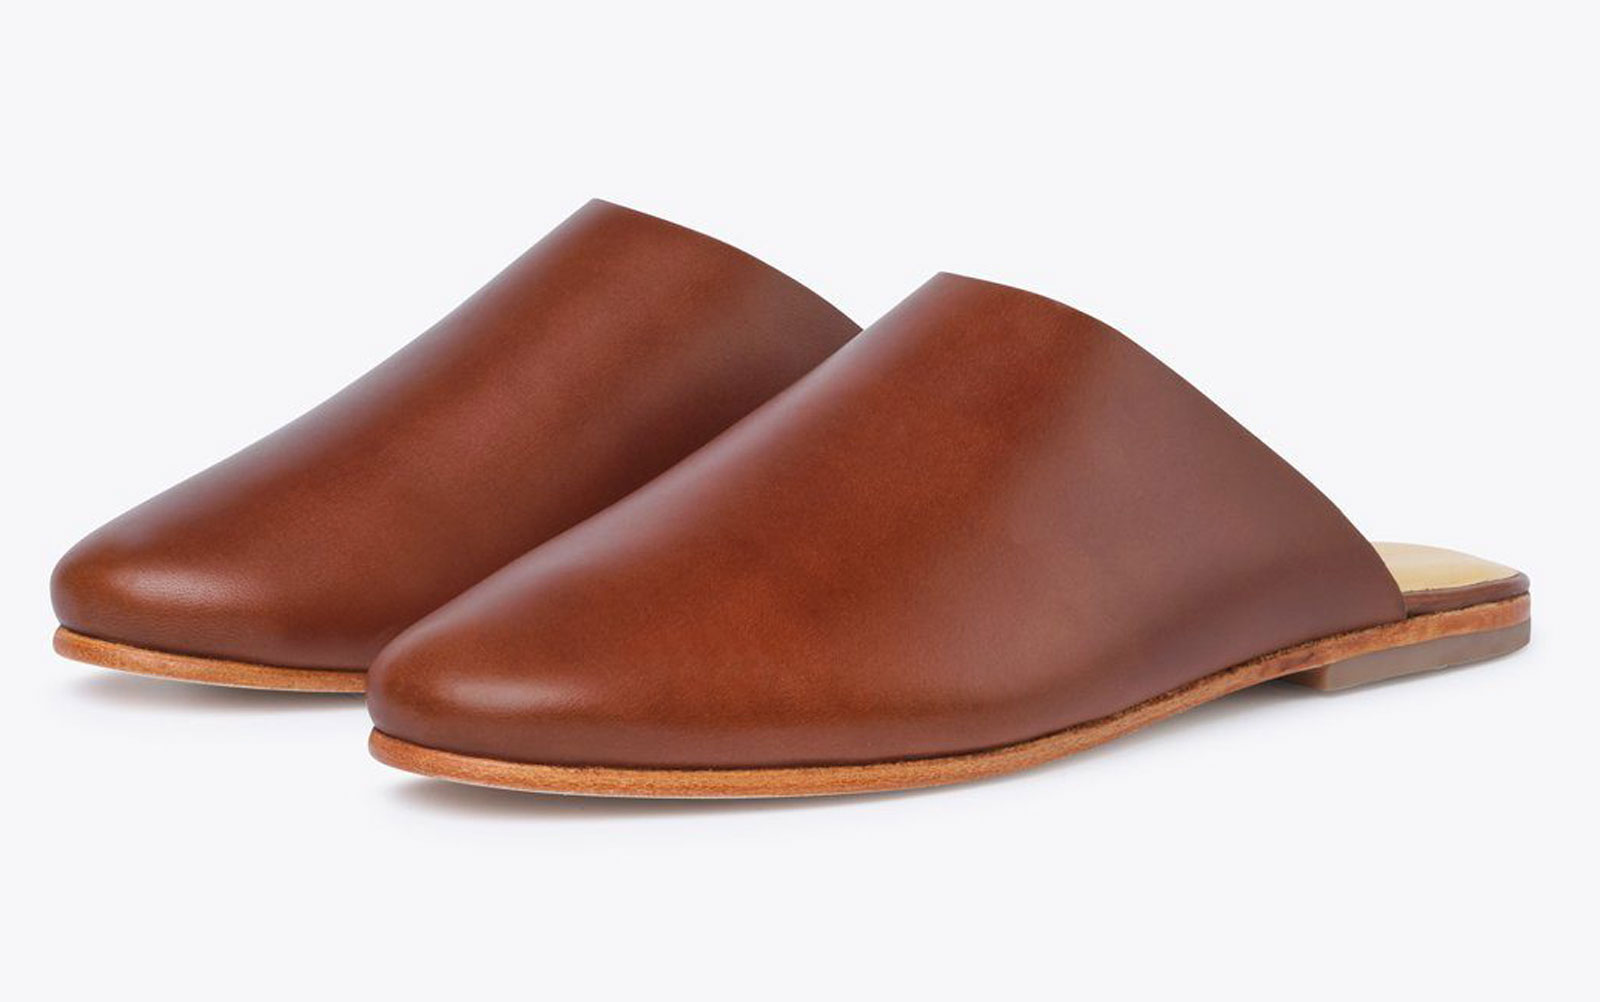 Brown leather slip on mules